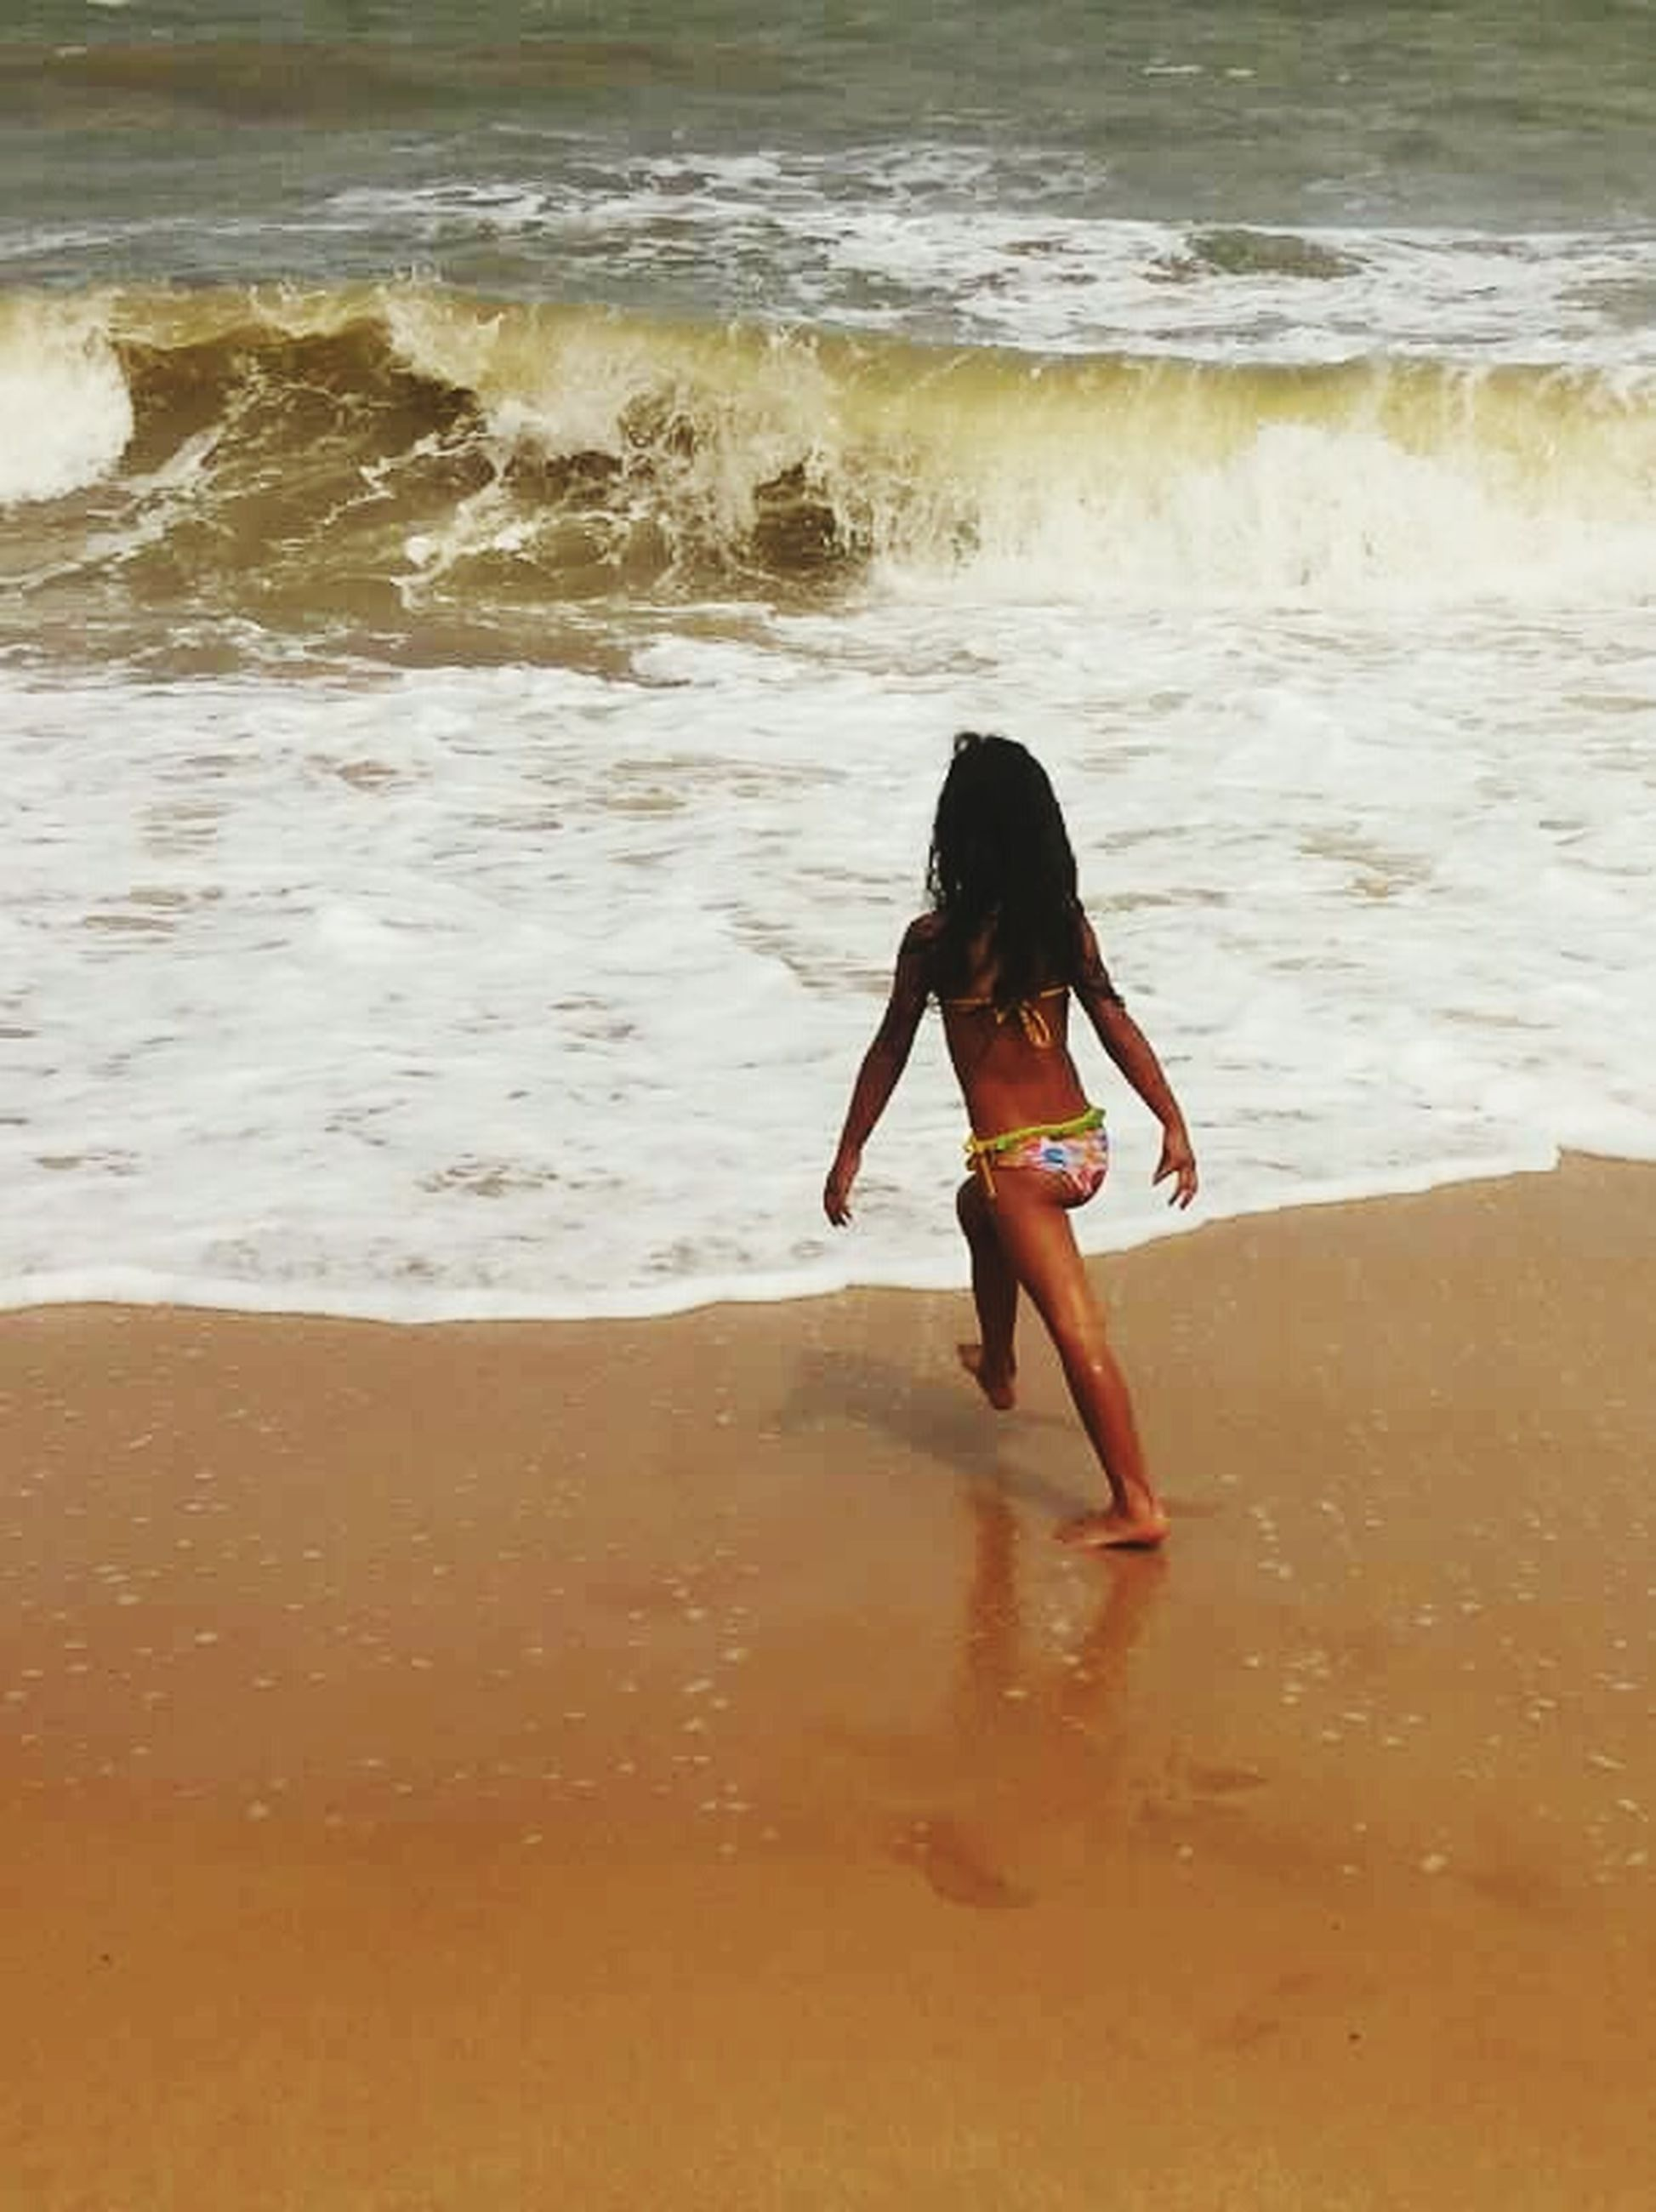 beach, sand, shore, wave, surf, sea, water, vacations, tourism, tide, one person, coastline, tourist, summer, carefree, travel destinations, weekend activities, one girl only, beach holiday, tranquility, enjoyment, getting away from it all, beauty in nature, nature, reaching, person